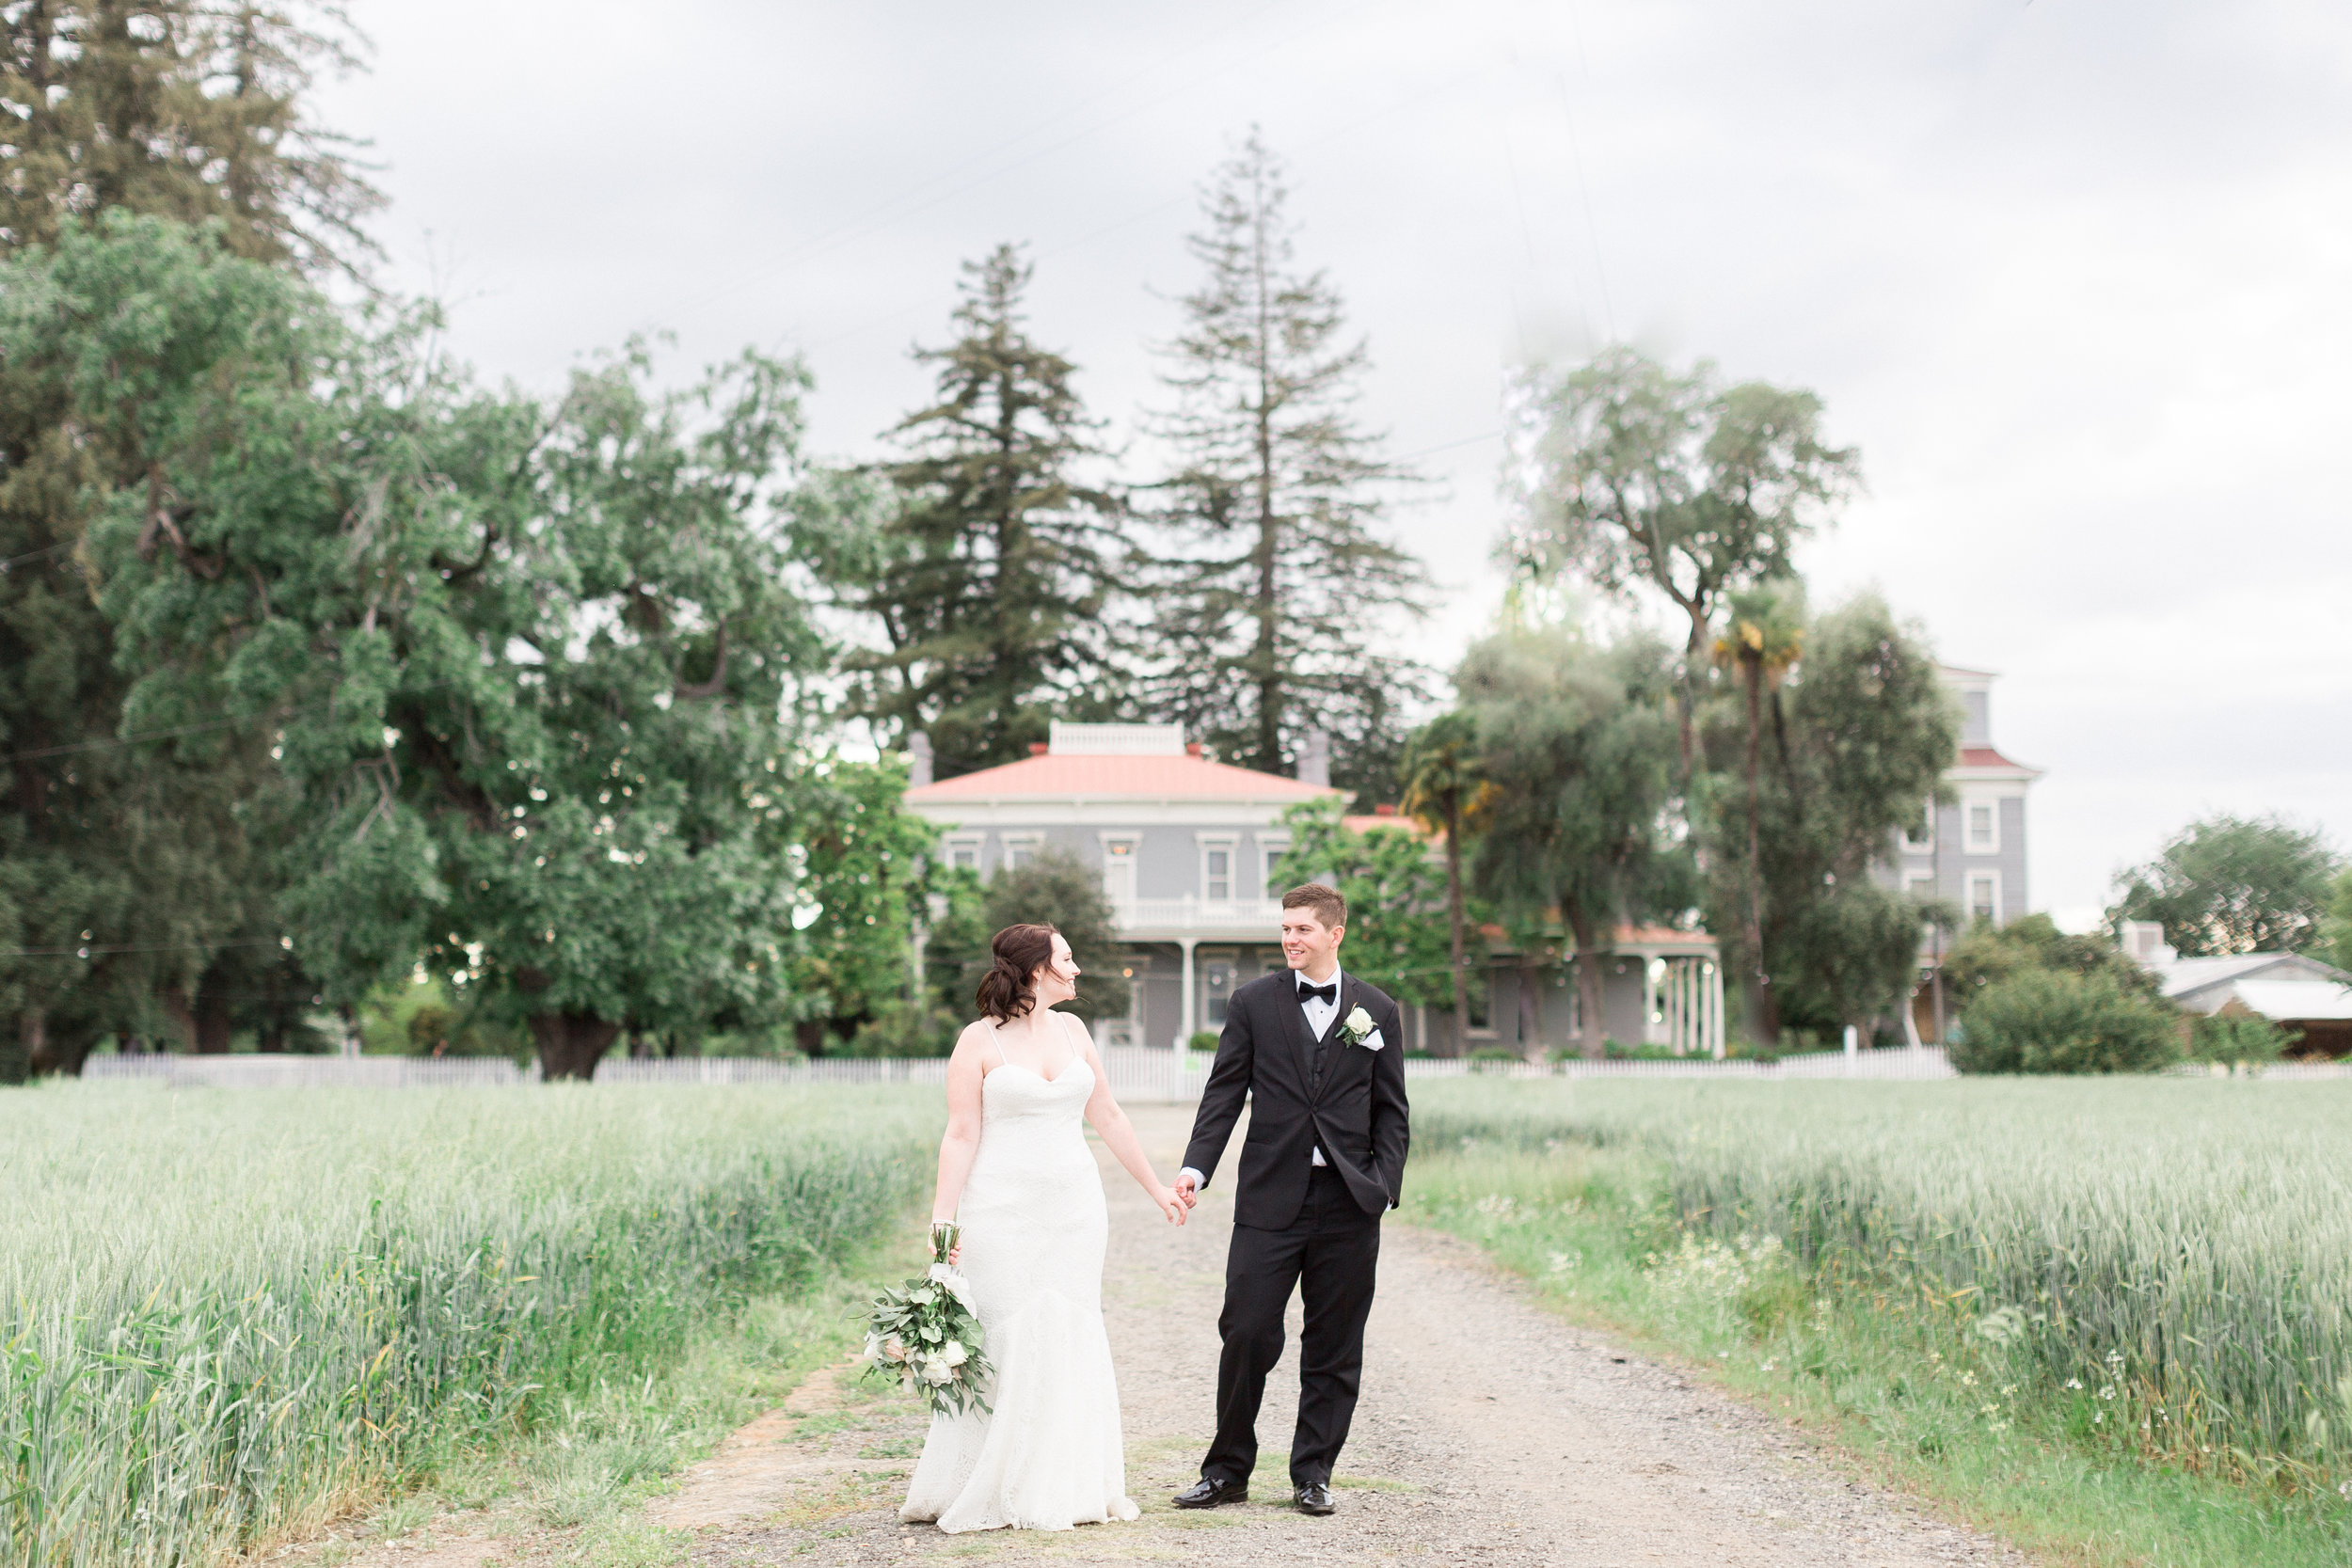 Patrick-Ranch-Wedding-Photos-234.jpg